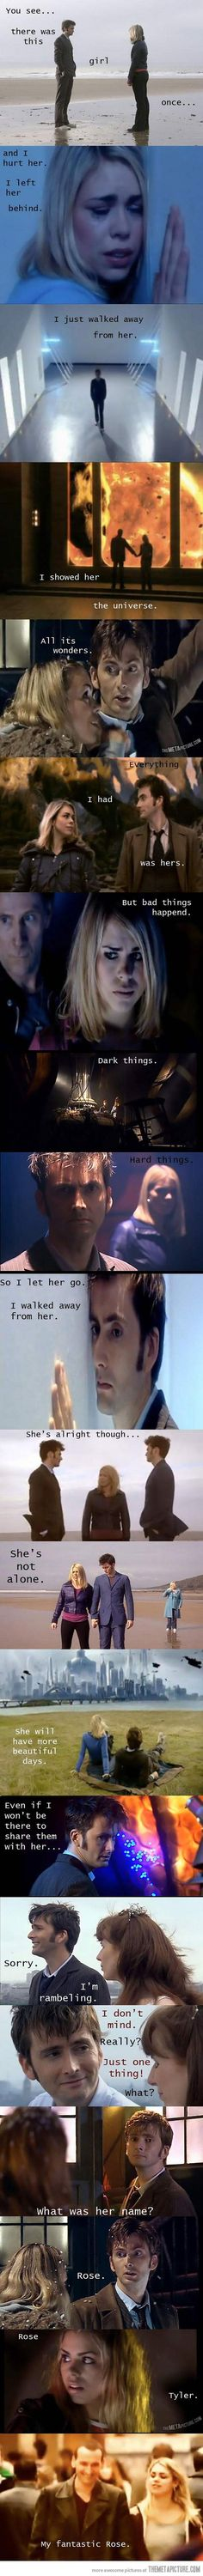 The Doctor and Rose <3 pretty sure I just cried because I'm not that far into the series yet and because I love them together.